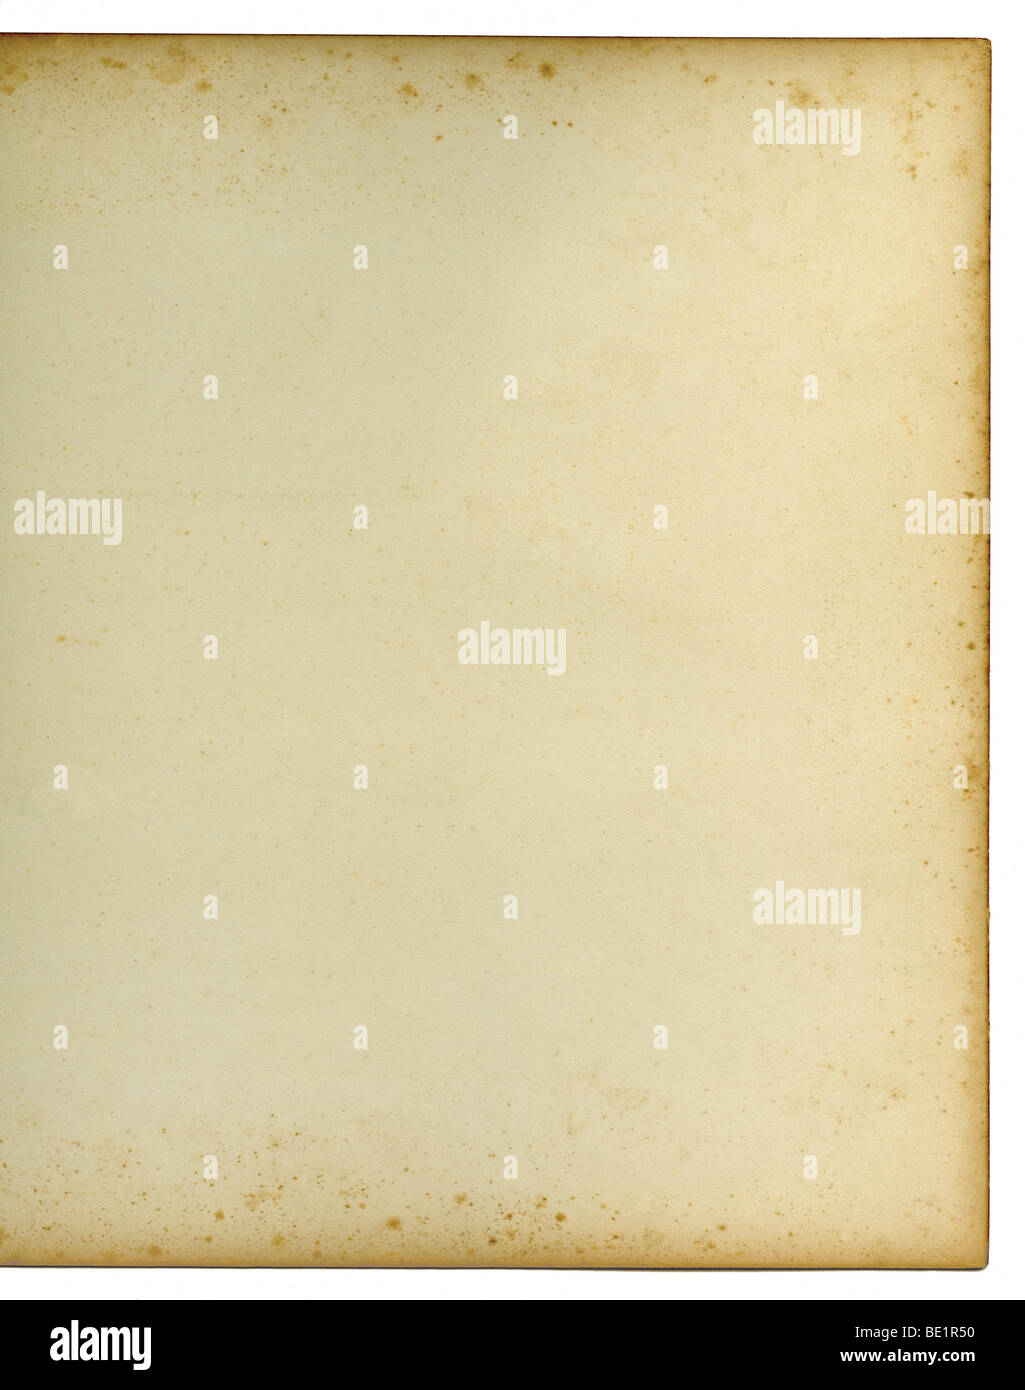 Blank page of an old writing book with age discolouration to the edges of the page and brown foxing marks - Stock Image